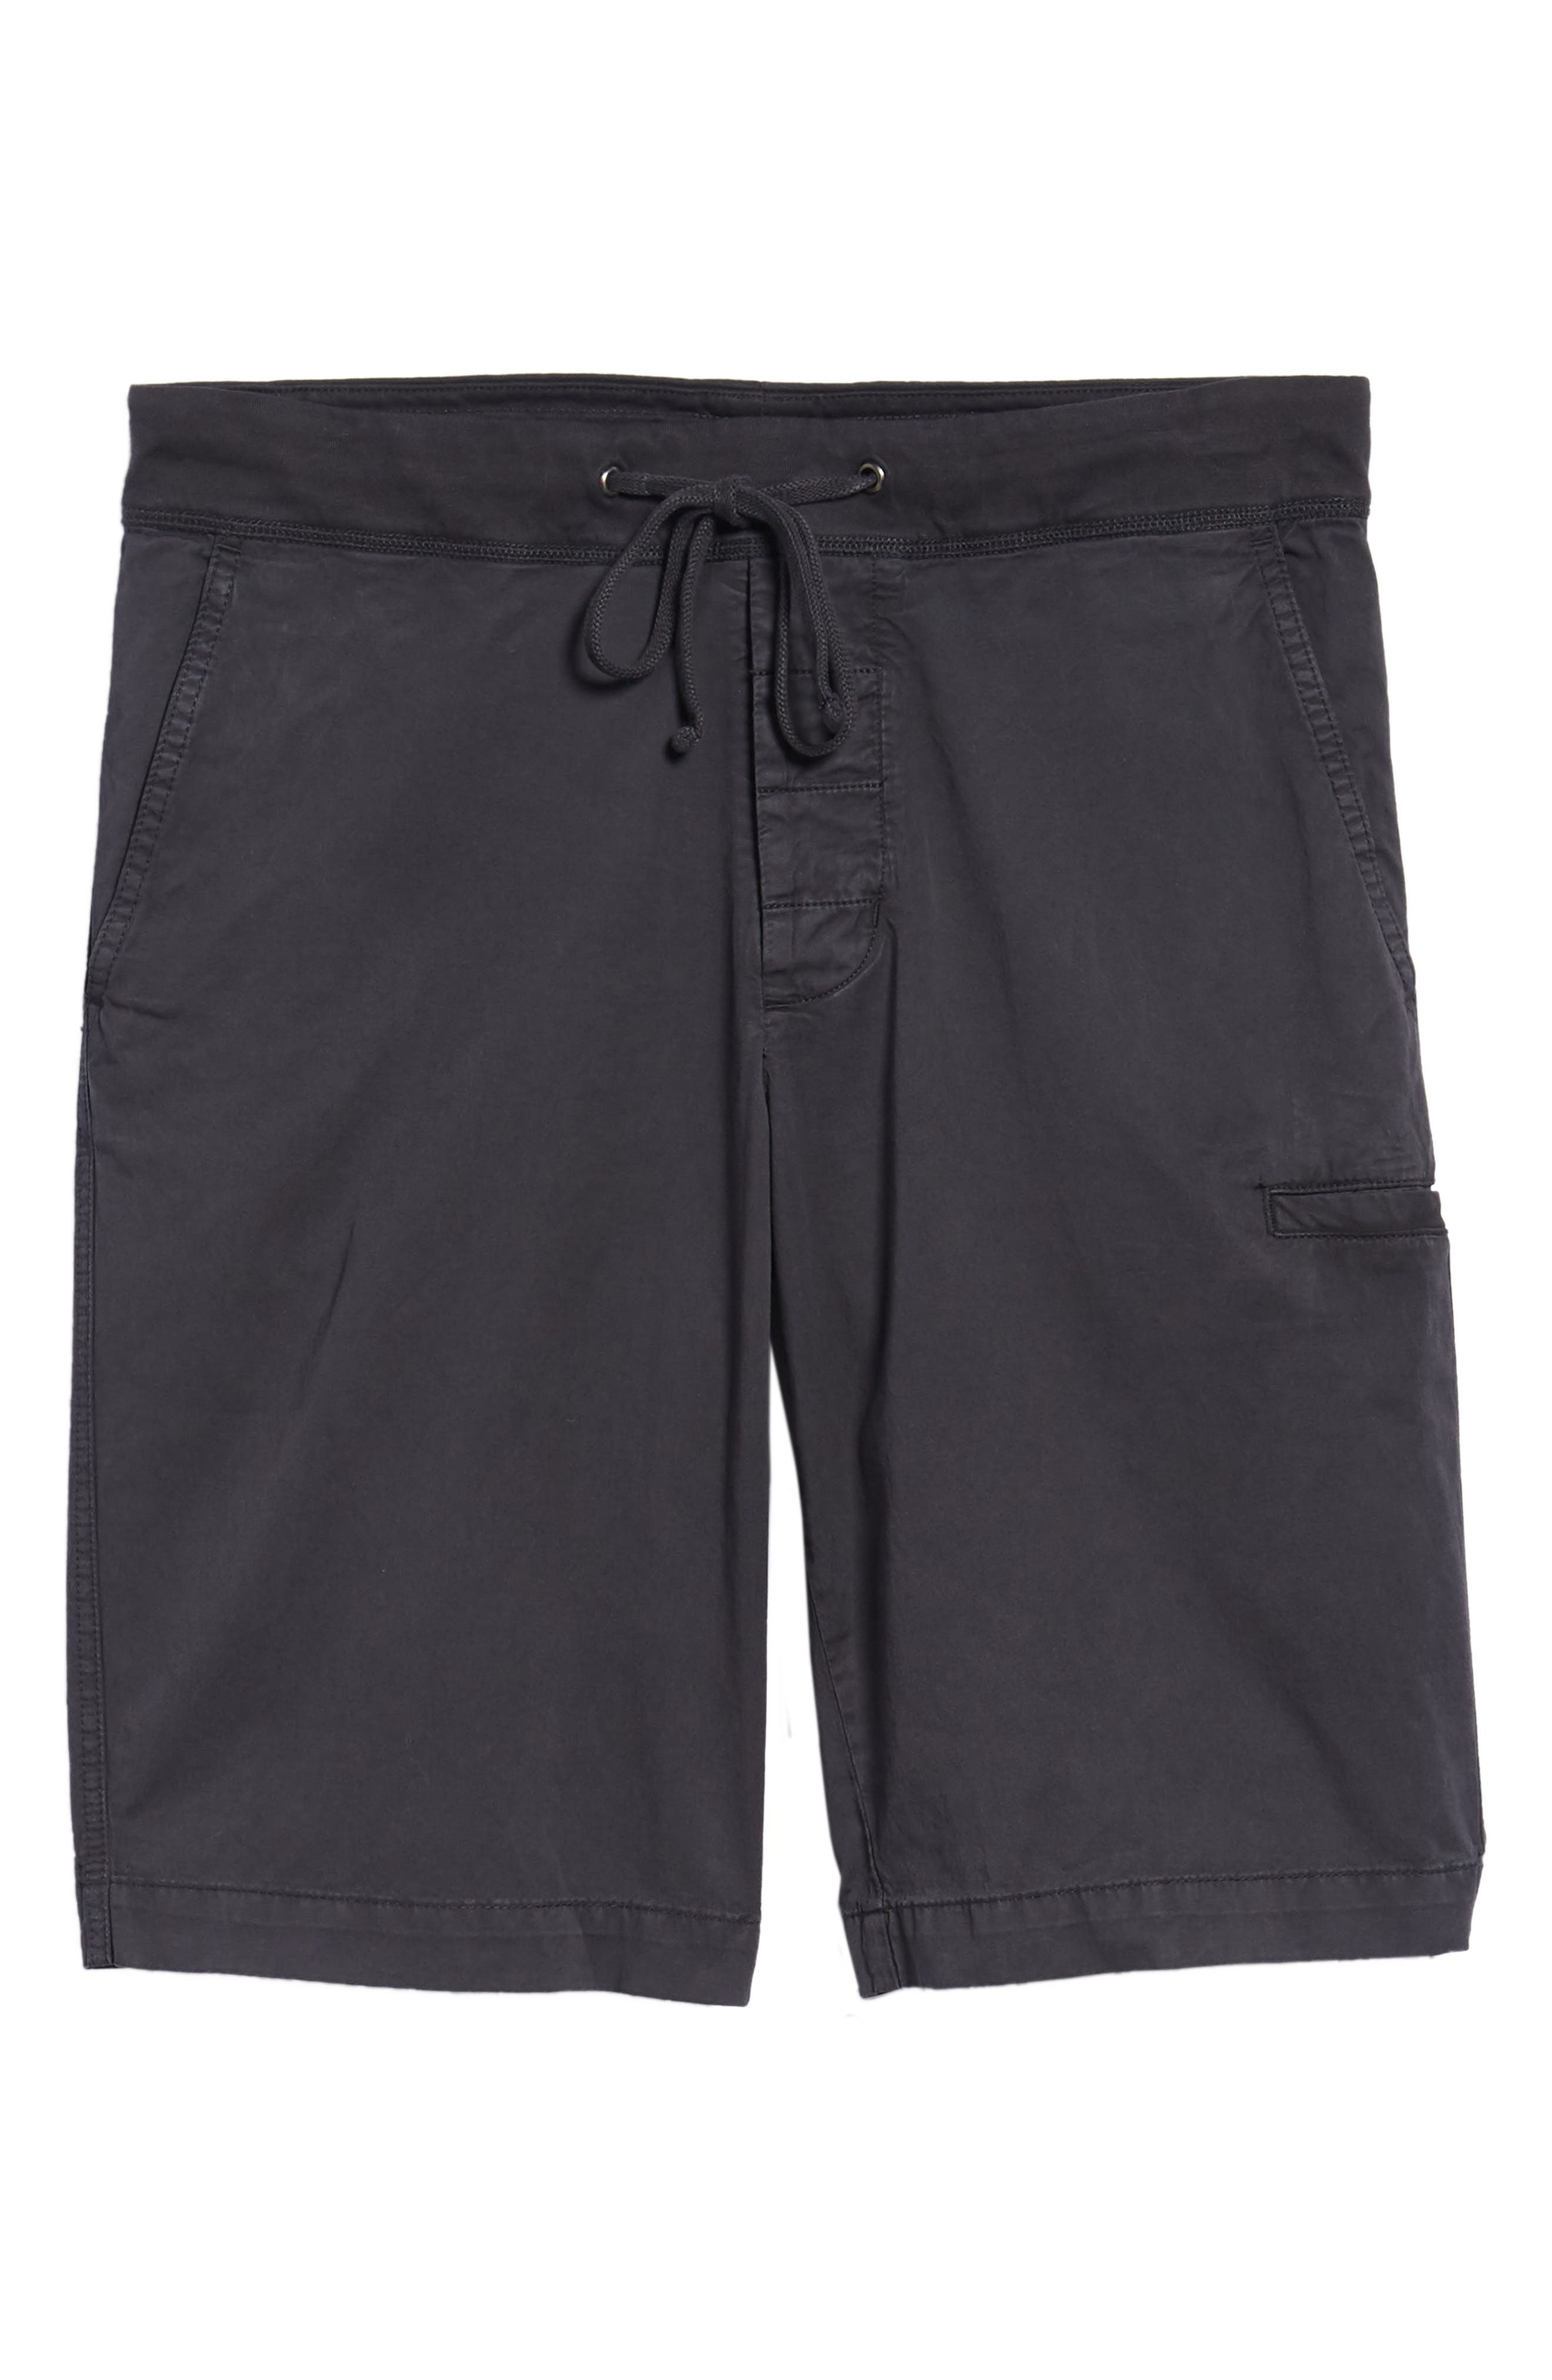 JAMES PERSE,                             Surplus Relaxed Fit Shorts,                             Alternate thumbnail 6, color,                             023